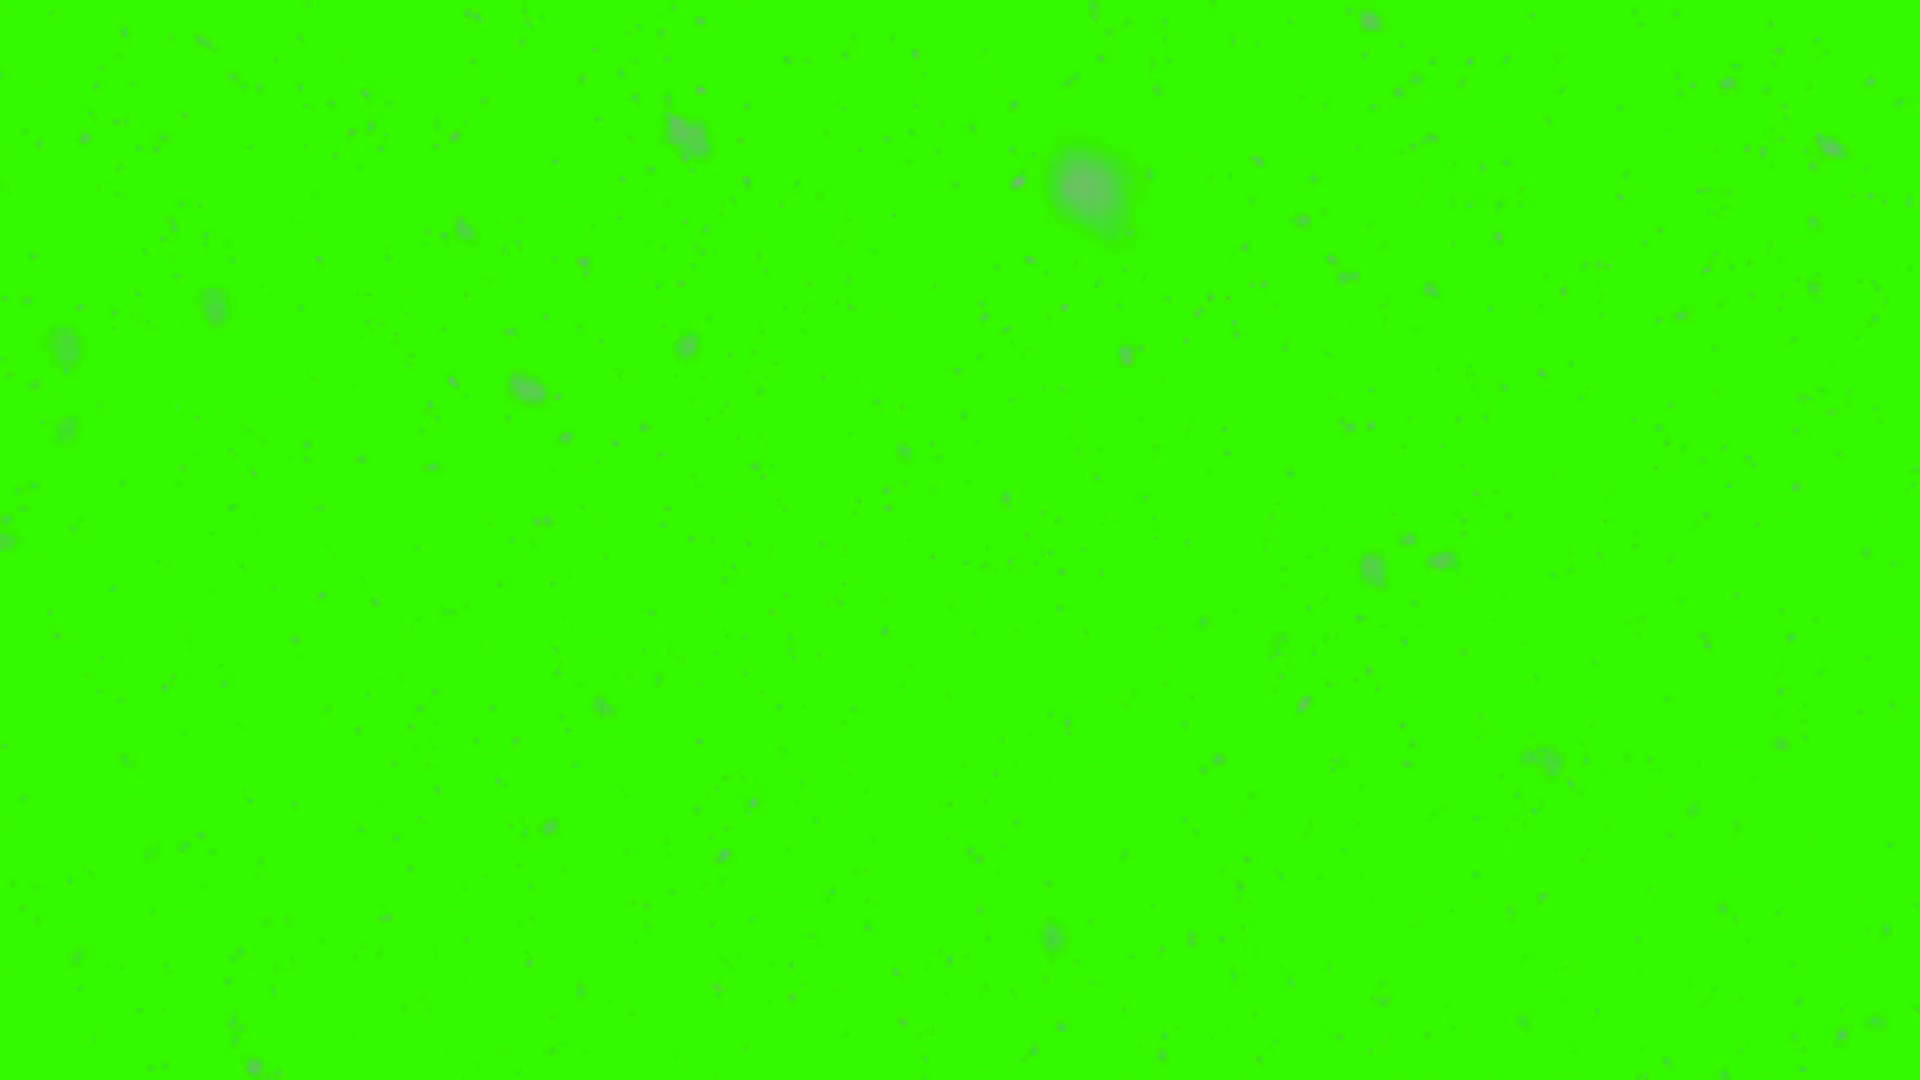 Realistic snowflakes snow storm green screen background.